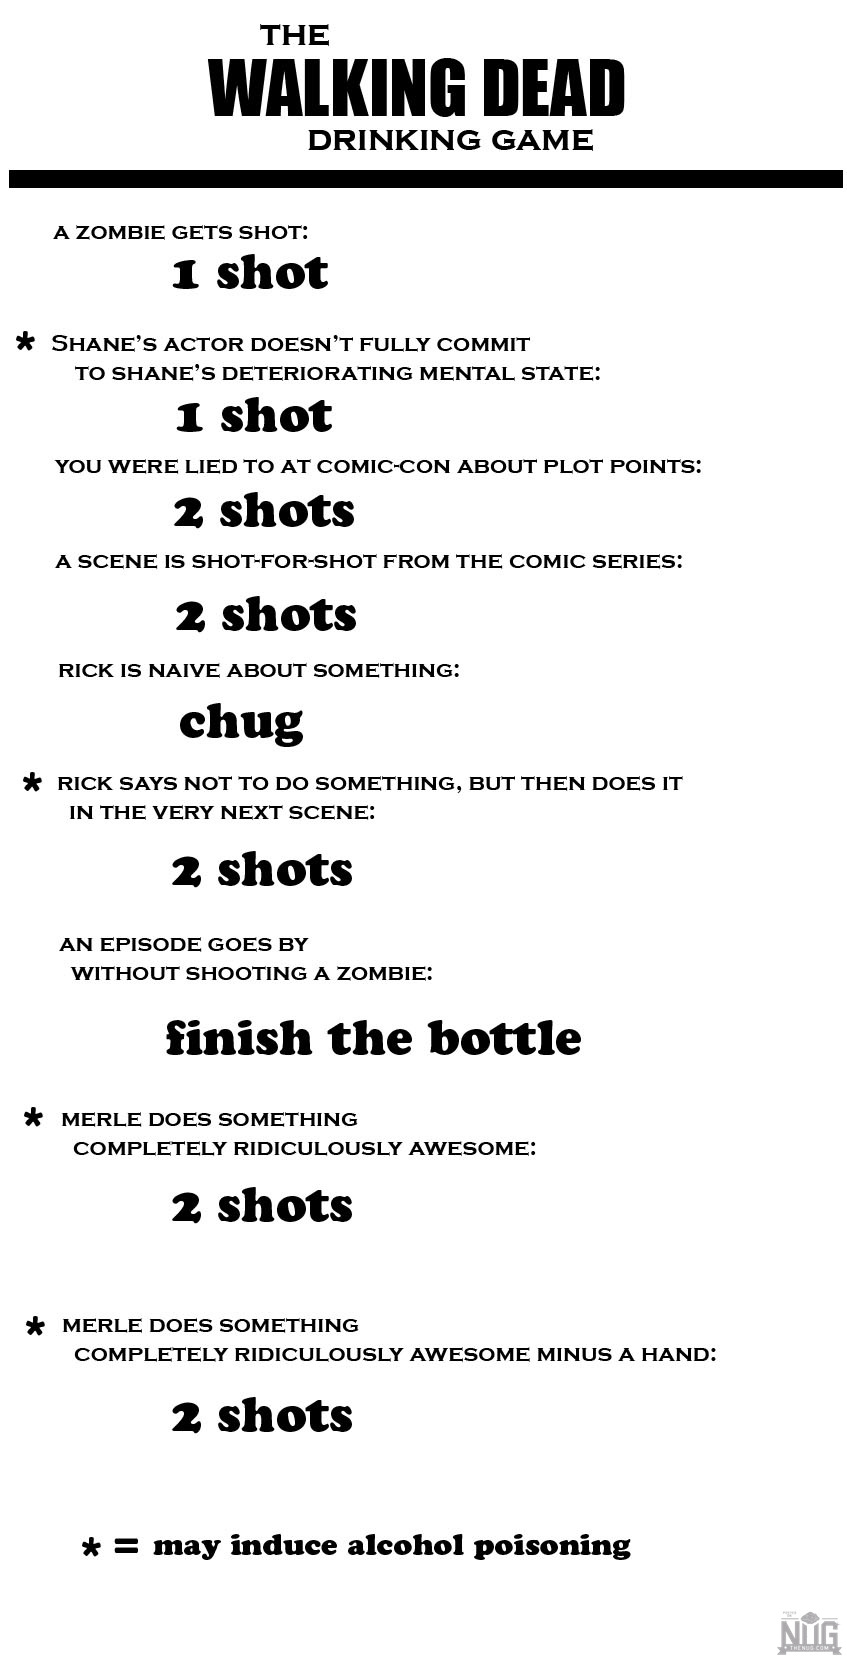 THE WALKING DEAD DRINKING GAME A ZOMBIE GETS SHOT 1 Shot SHanES ACTOR DOESN